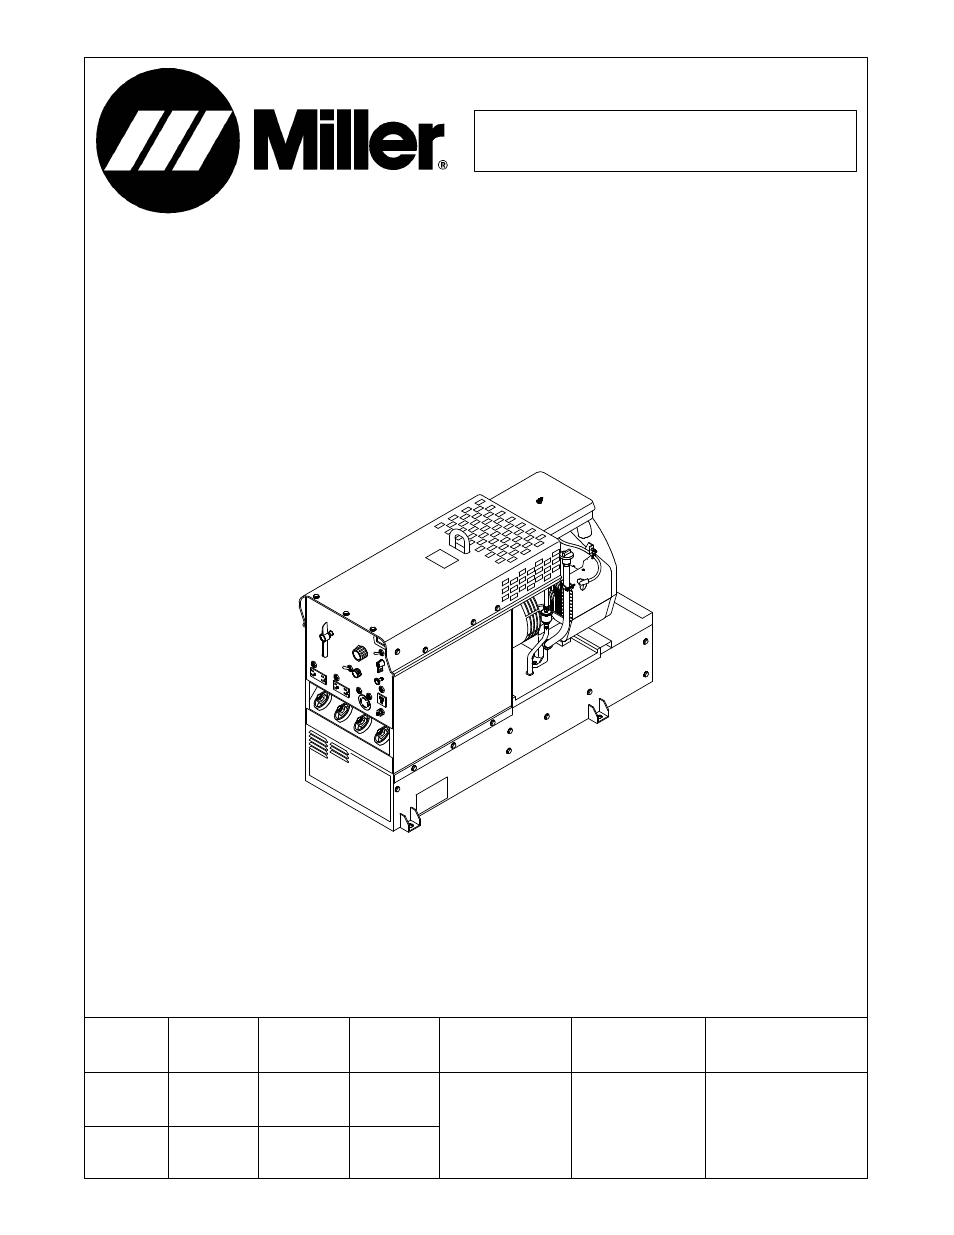 miller electric legend aead 200 le user manual 68 pages rh manualsdir com miller welders manuals for millermatic s-32s miller 452 welder manual